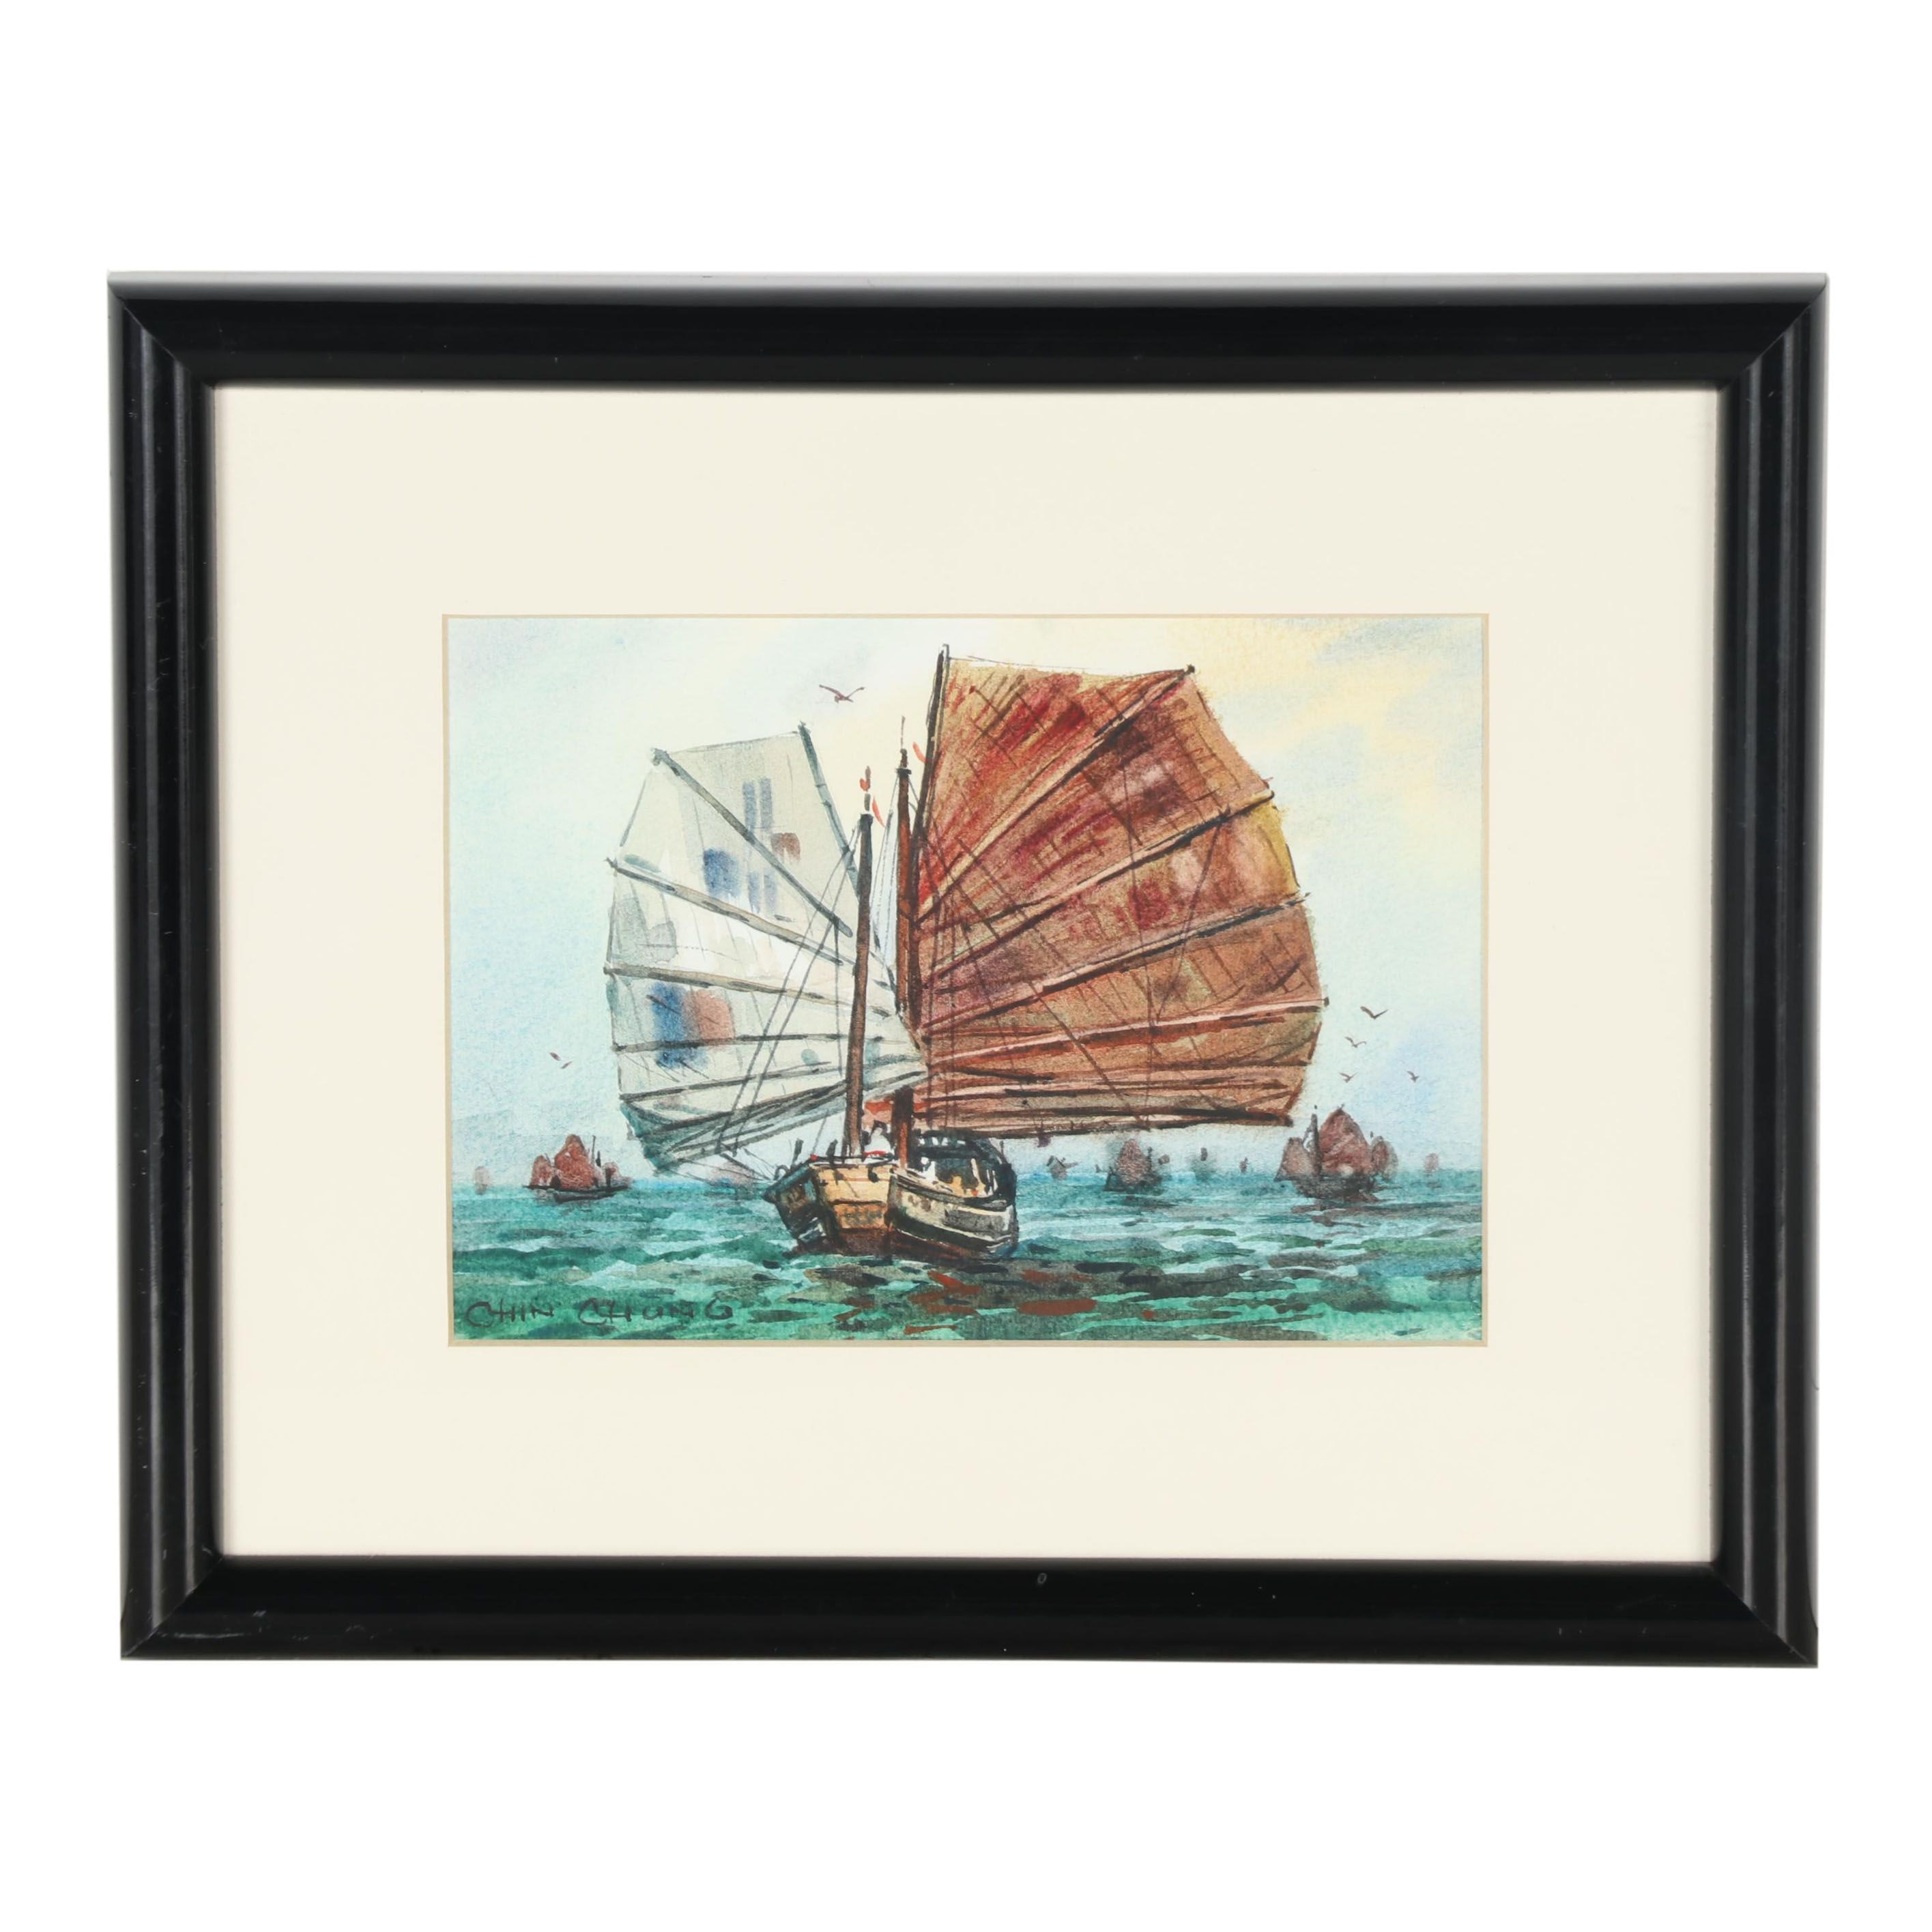 Chin Chung Watercolor Painting of Nautical Scene